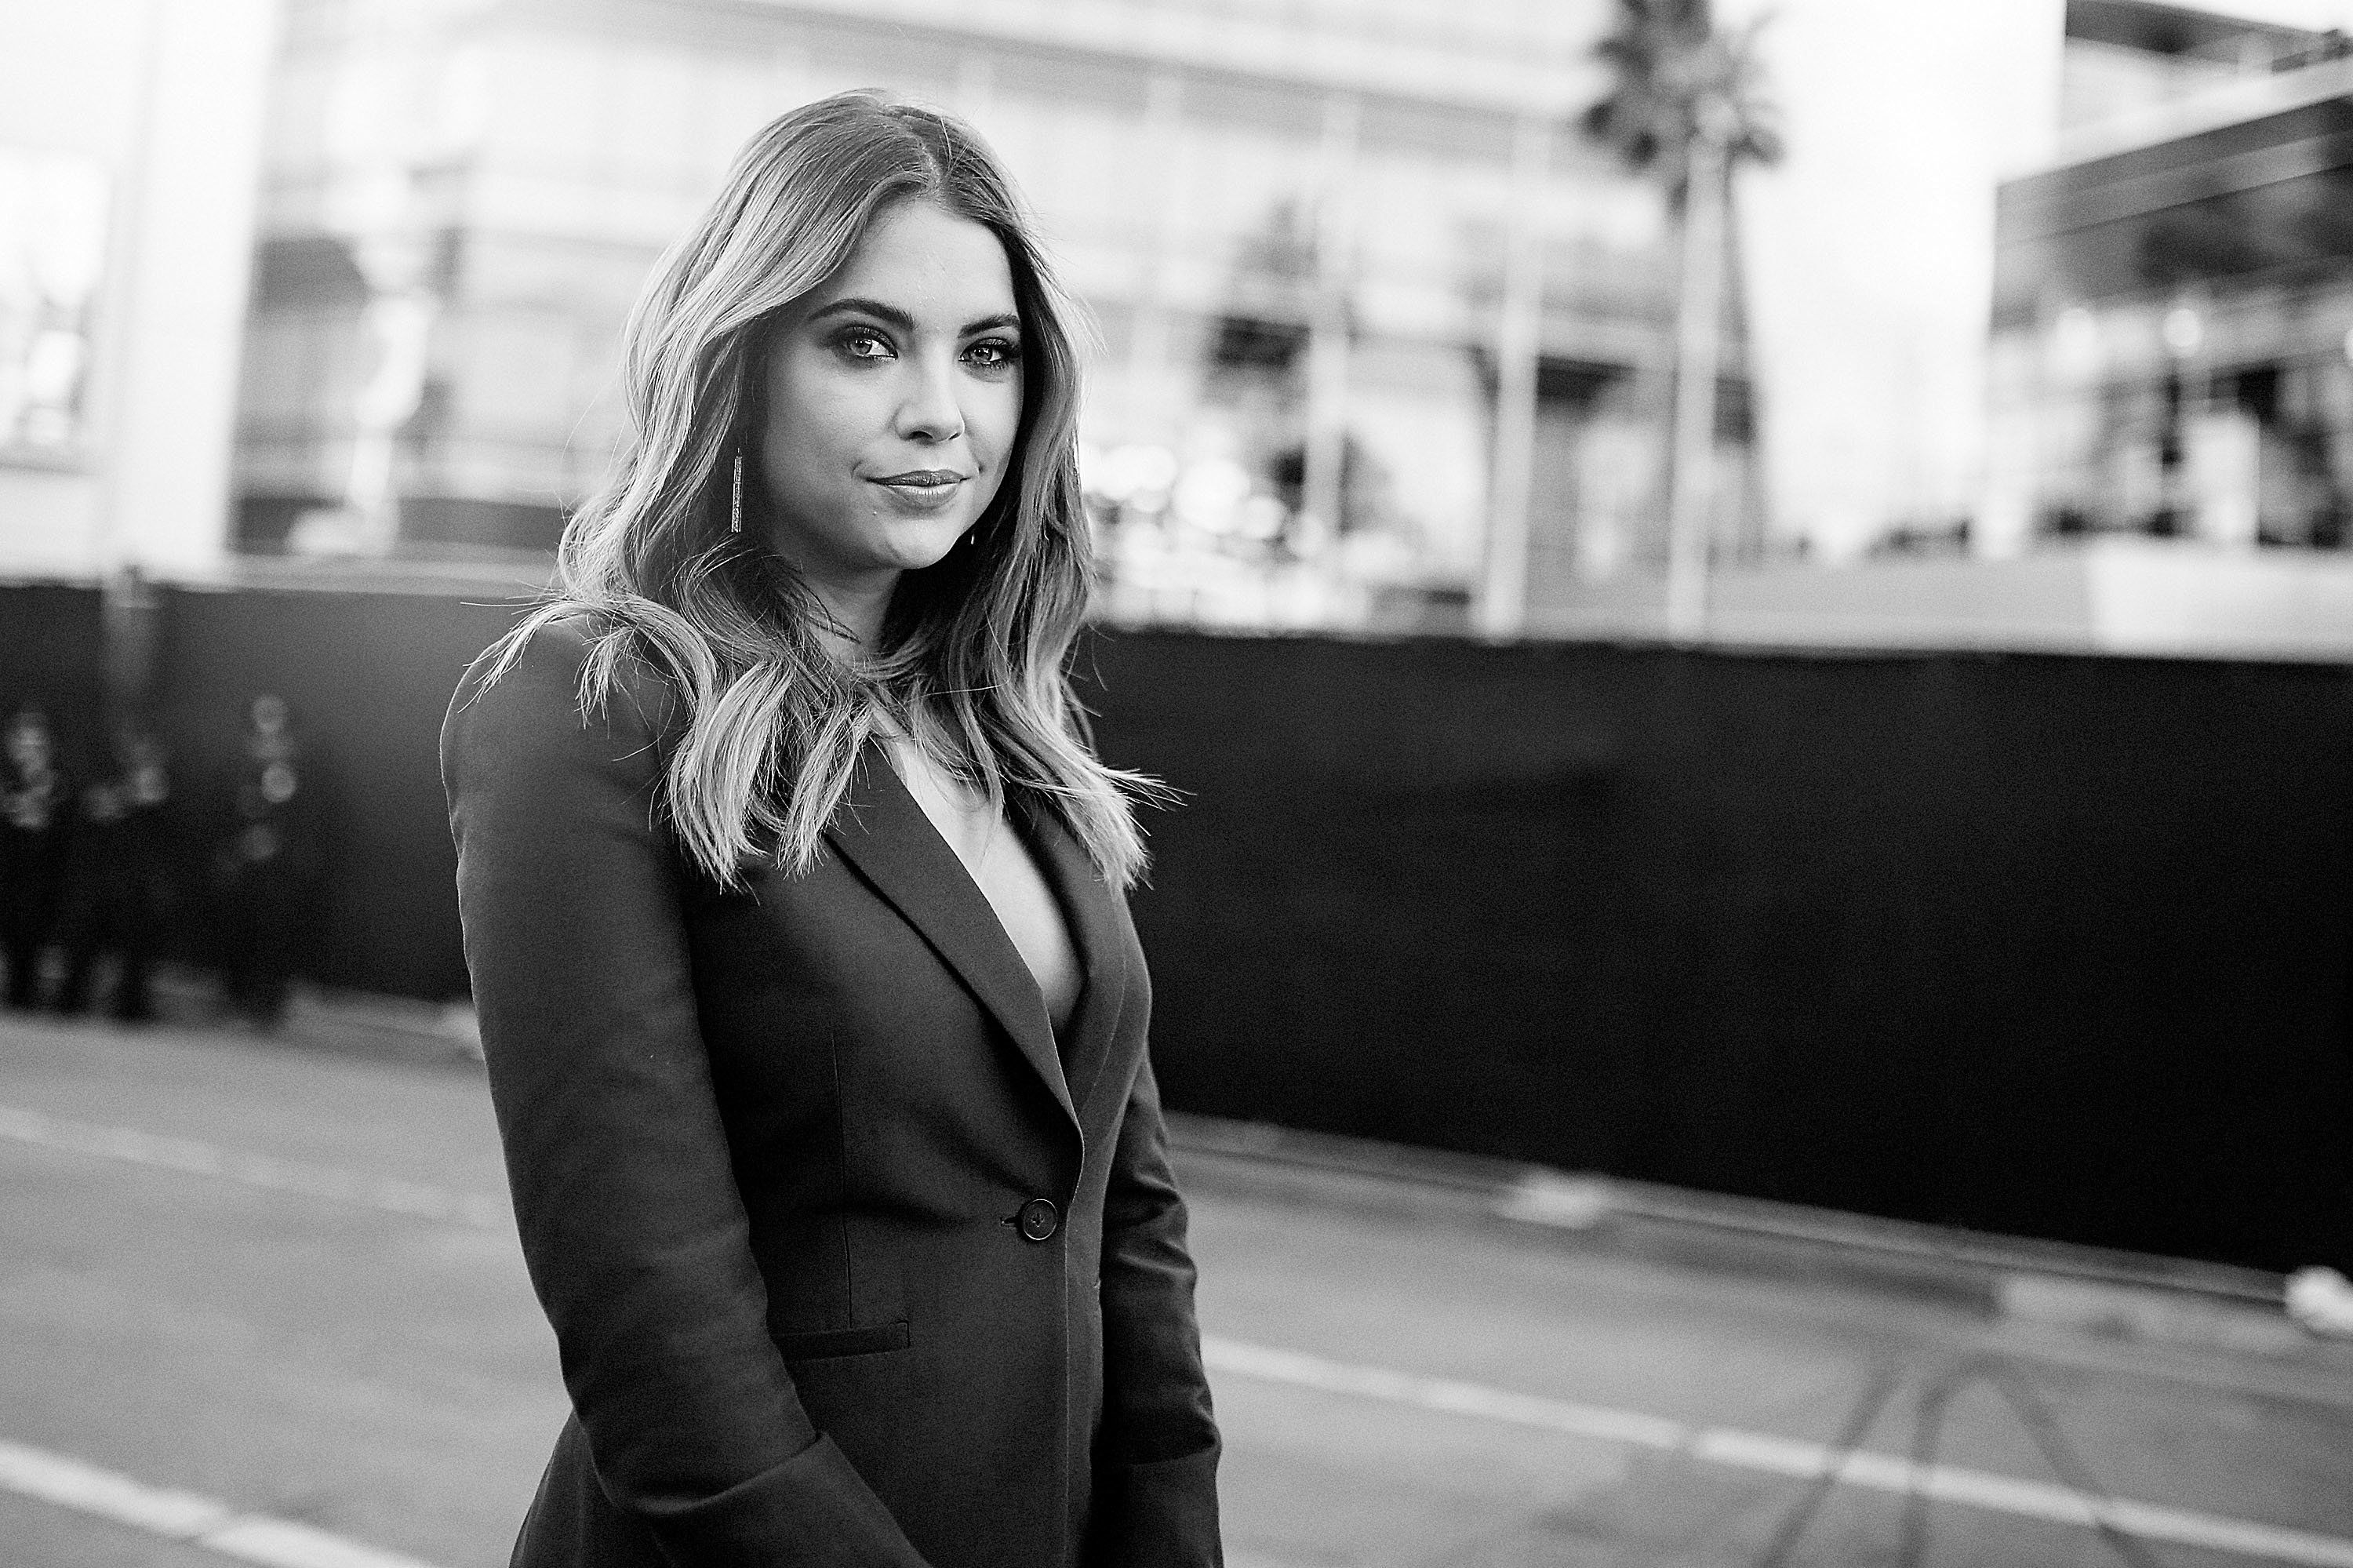 LOS ANGELES, CA - NOVEMBER 22:  (EDITORS NOTE: Image has been altered with digital filters) Actress Ashley Benson attends the 2015 American Music Awards at Microsoft Theater on November 22, 2015 in Los Angeles, California.  (Photo by Mike Windle/AMA2015/Getty Images for dcp)